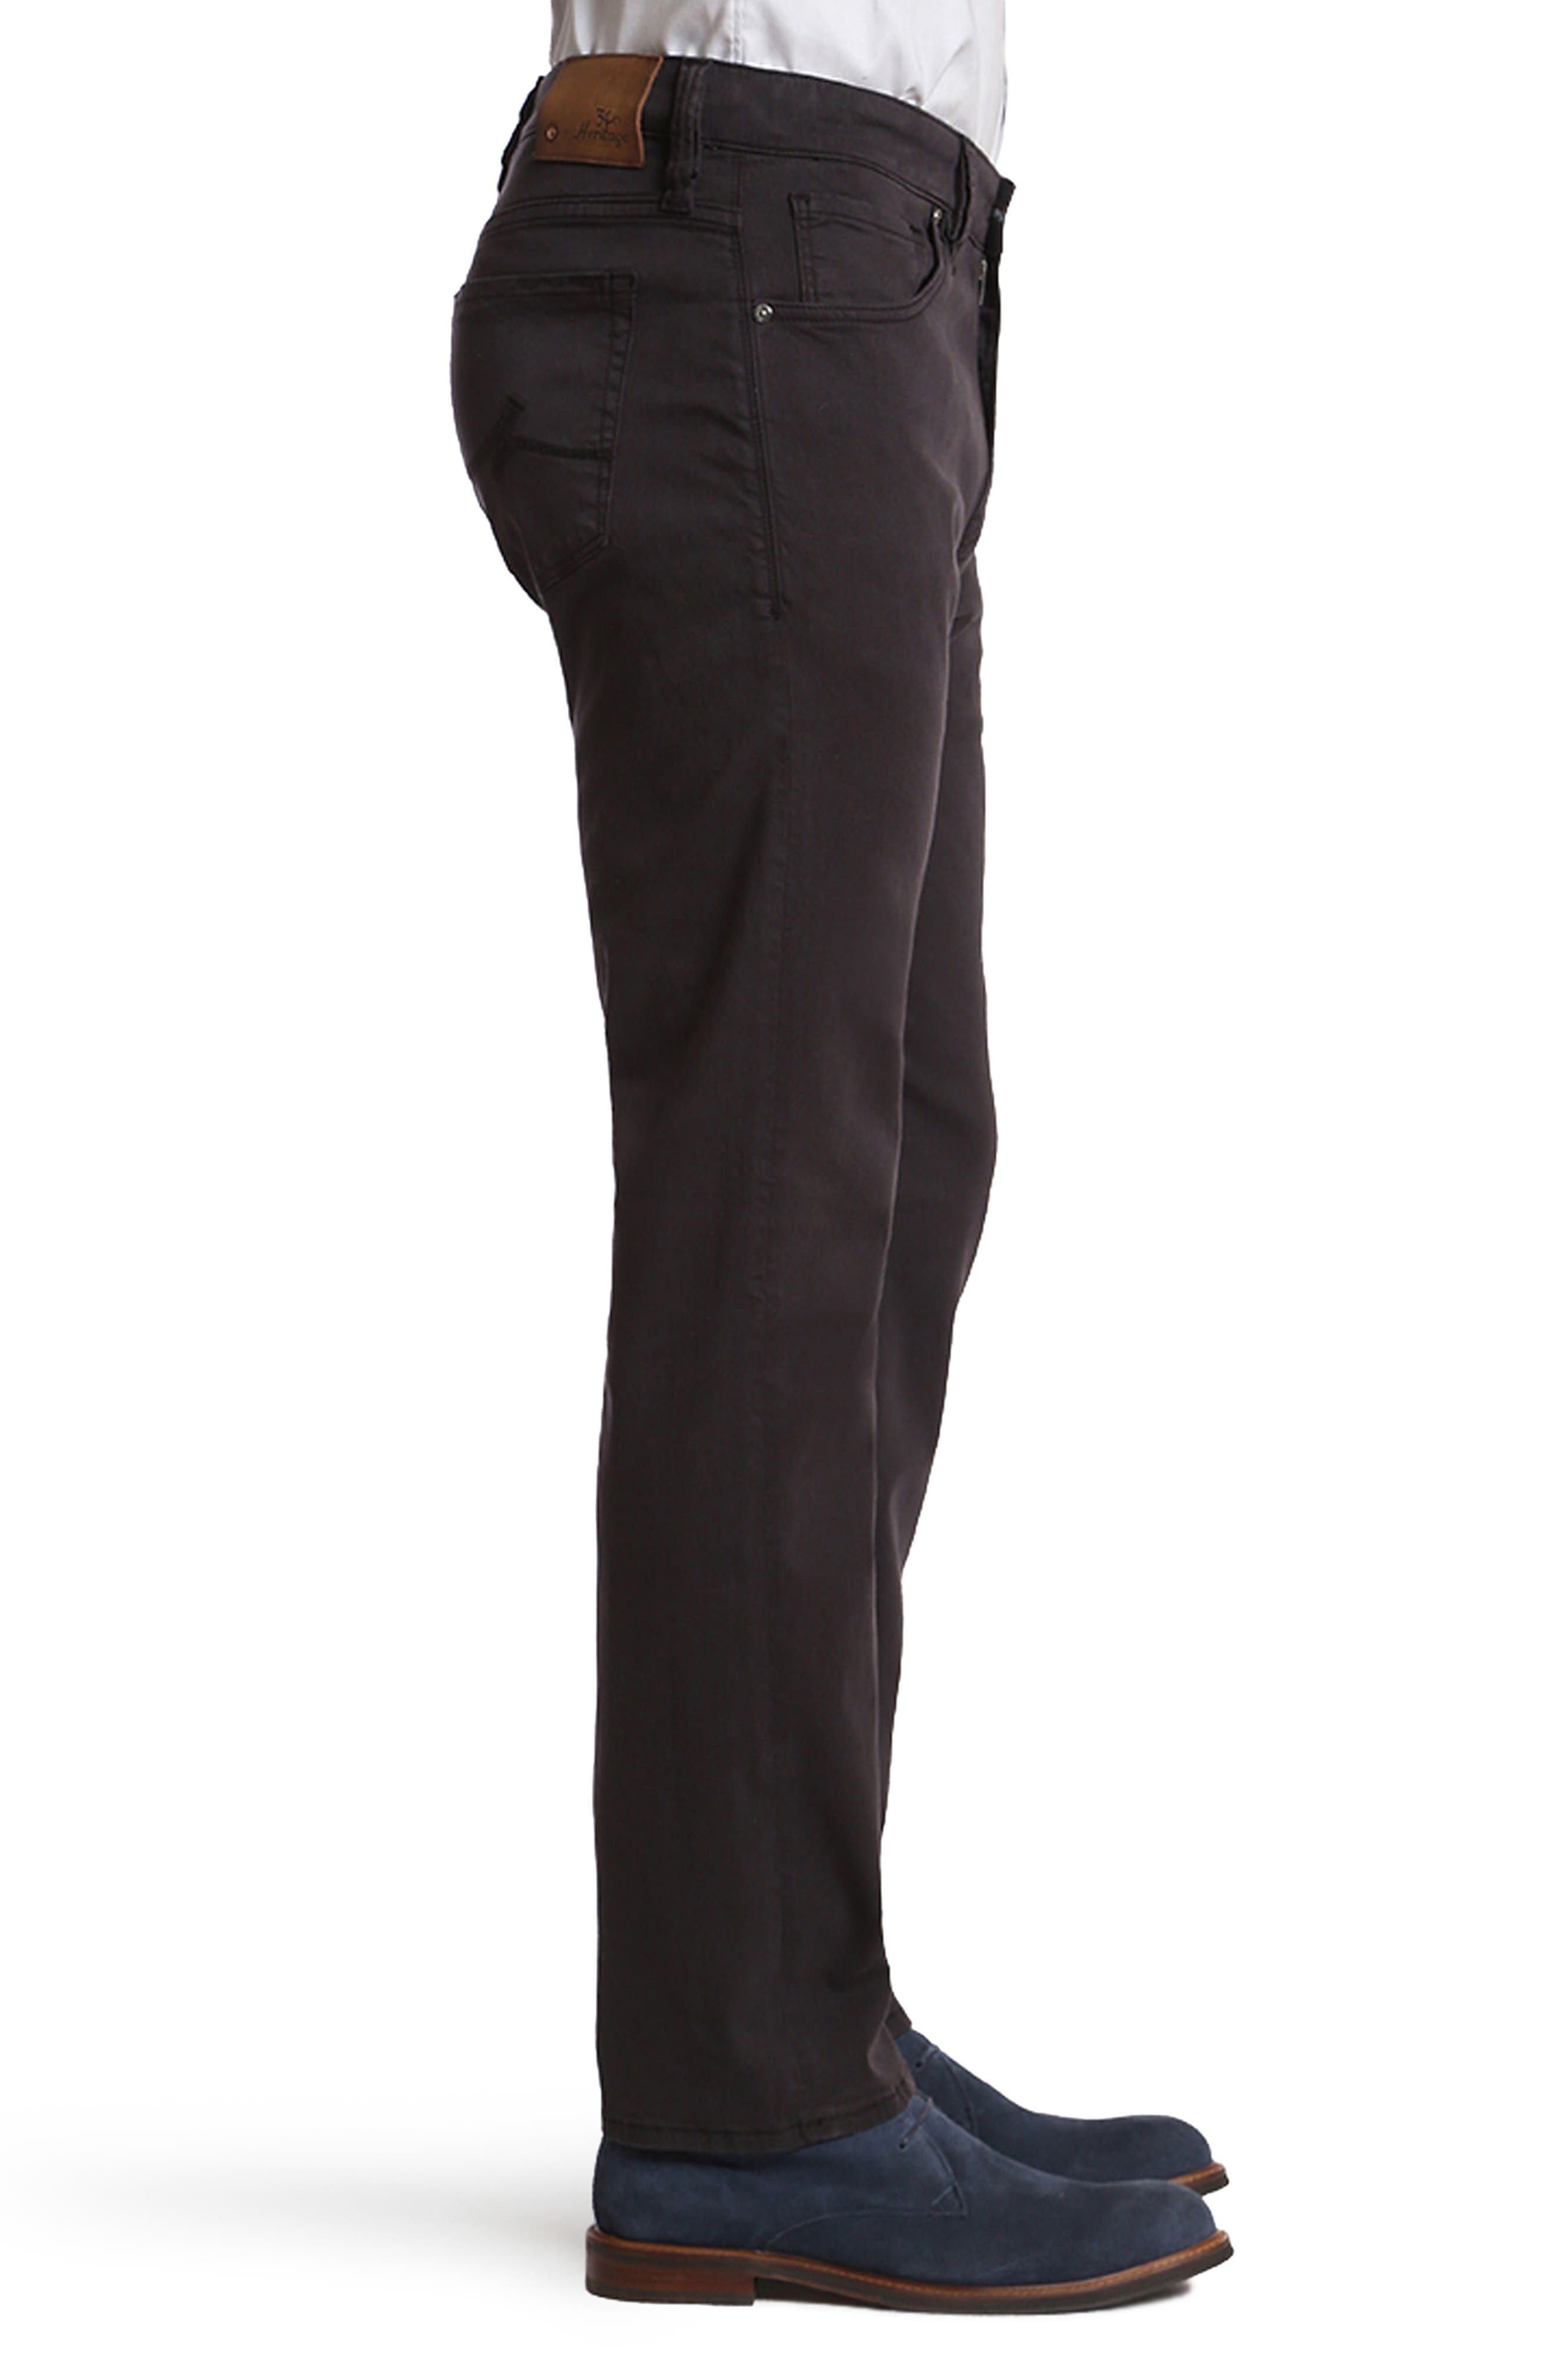 Courage Straight Leg Twill Pants,                             Alternate thumbnail 3, color,                             BLUE-GREY TWILL